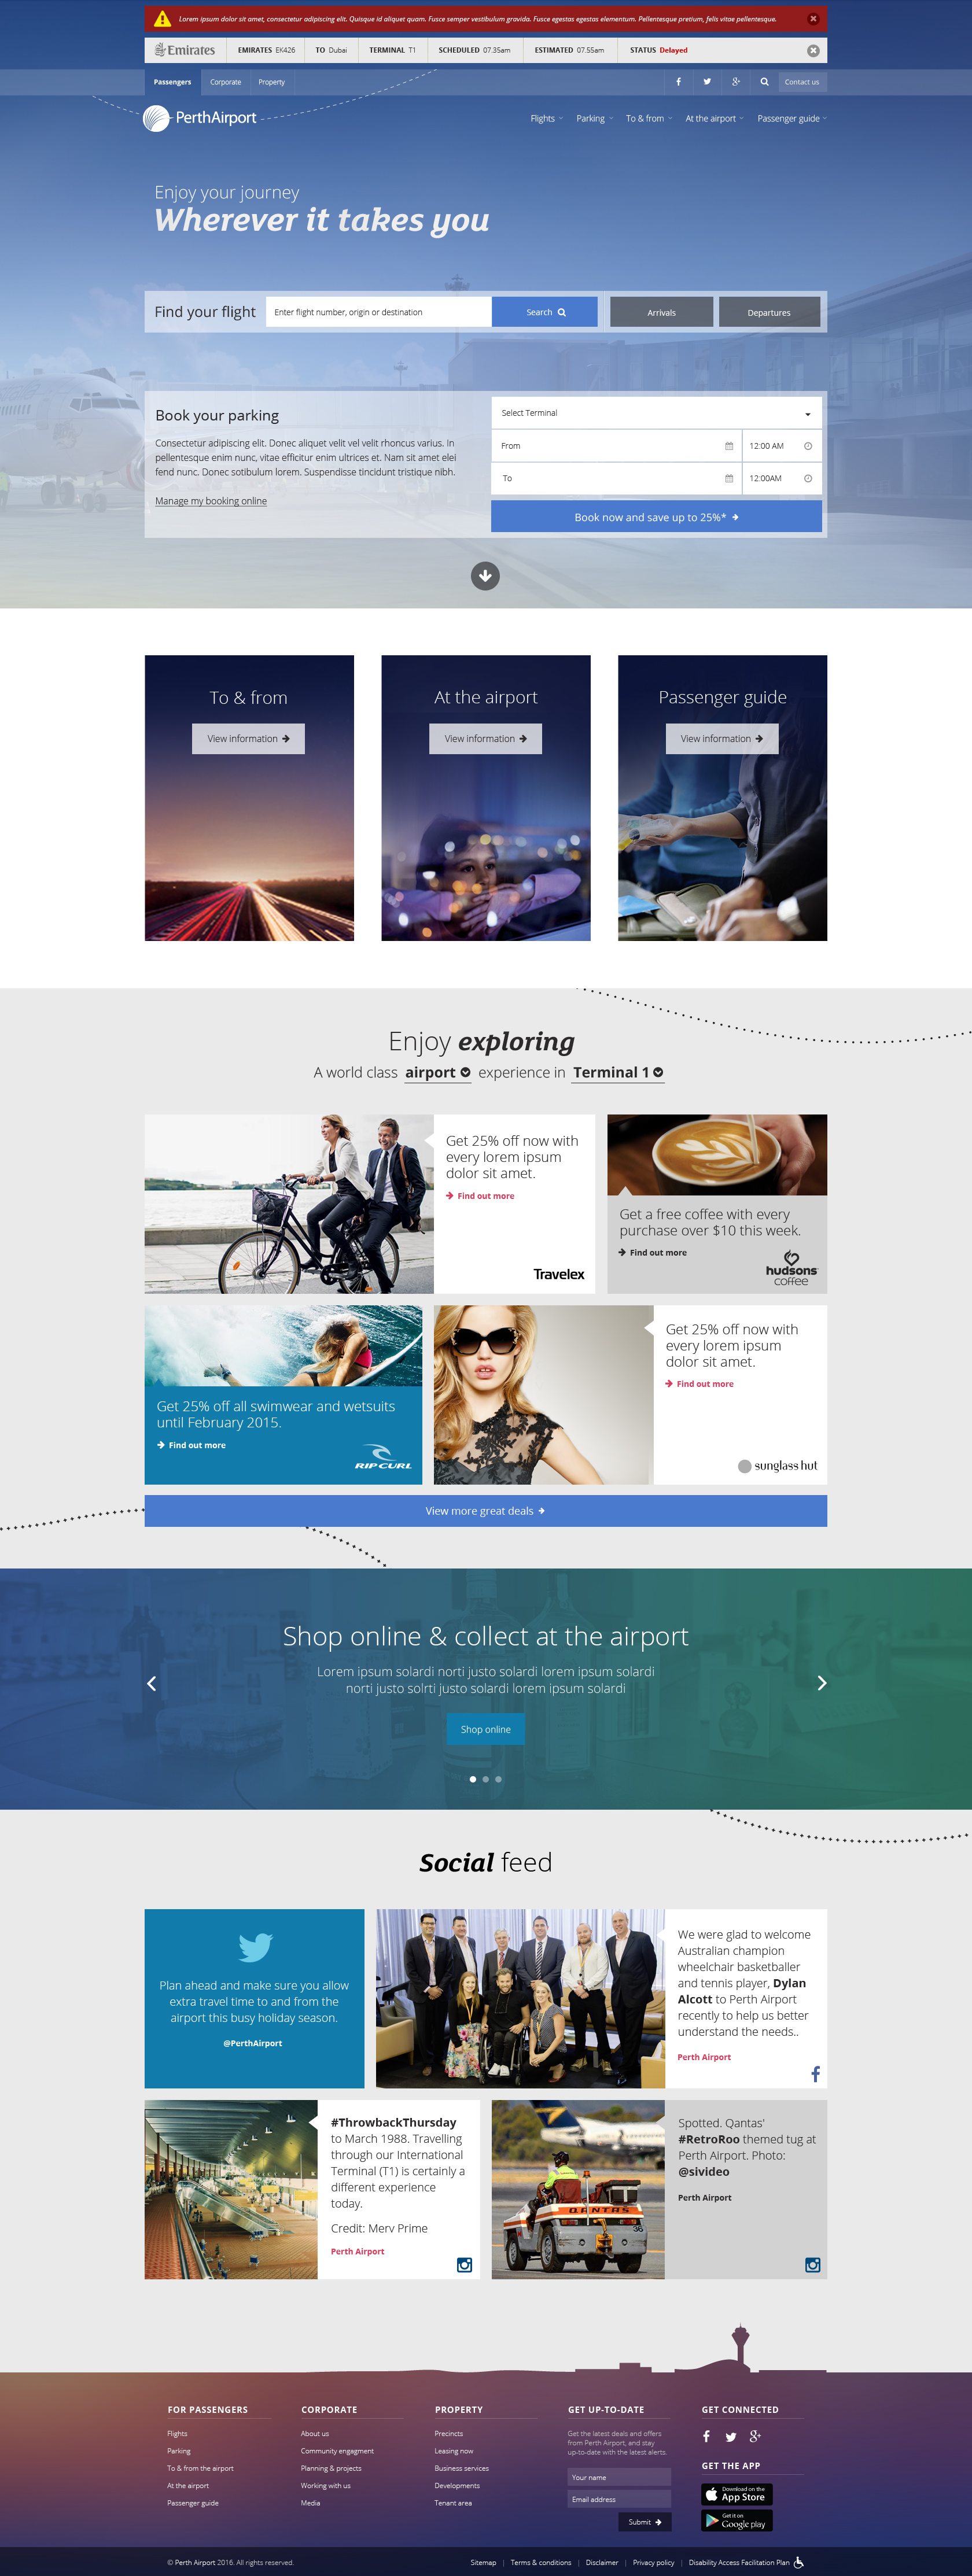 1b. PA001_Passenger_homepage_alternative-background_v2.jpg